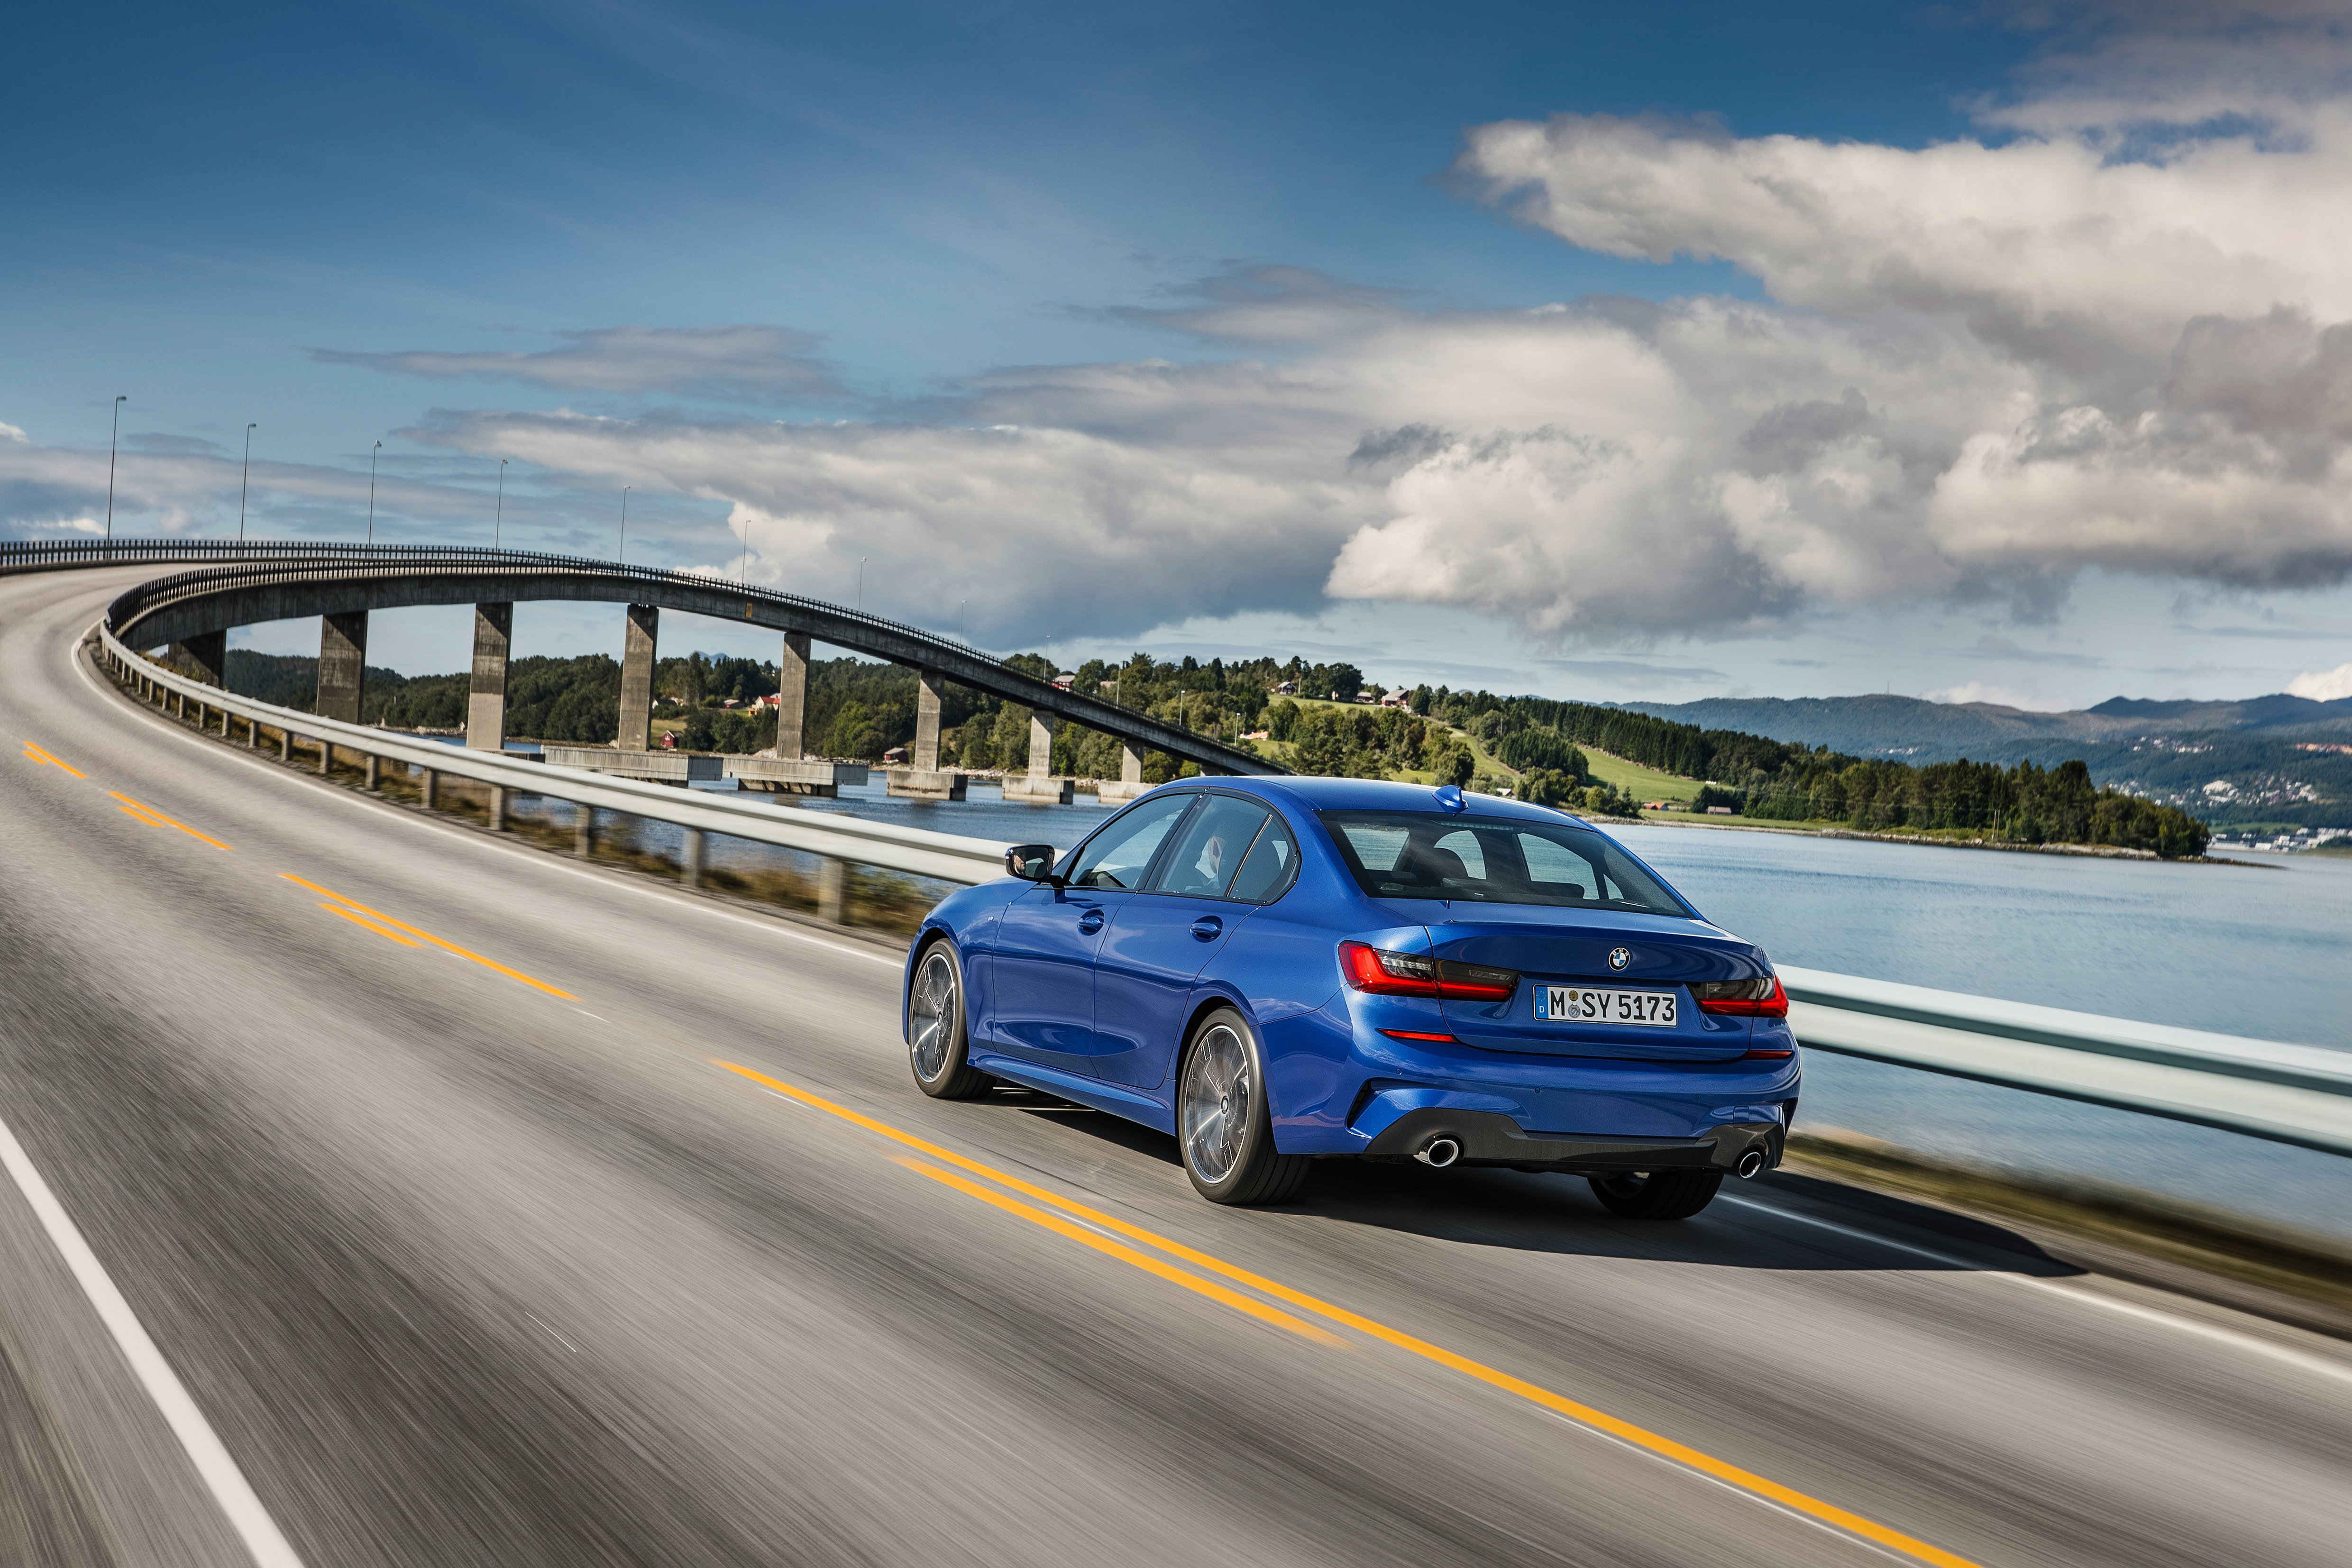 A first look at the new BMW 3 series – with awesome tech